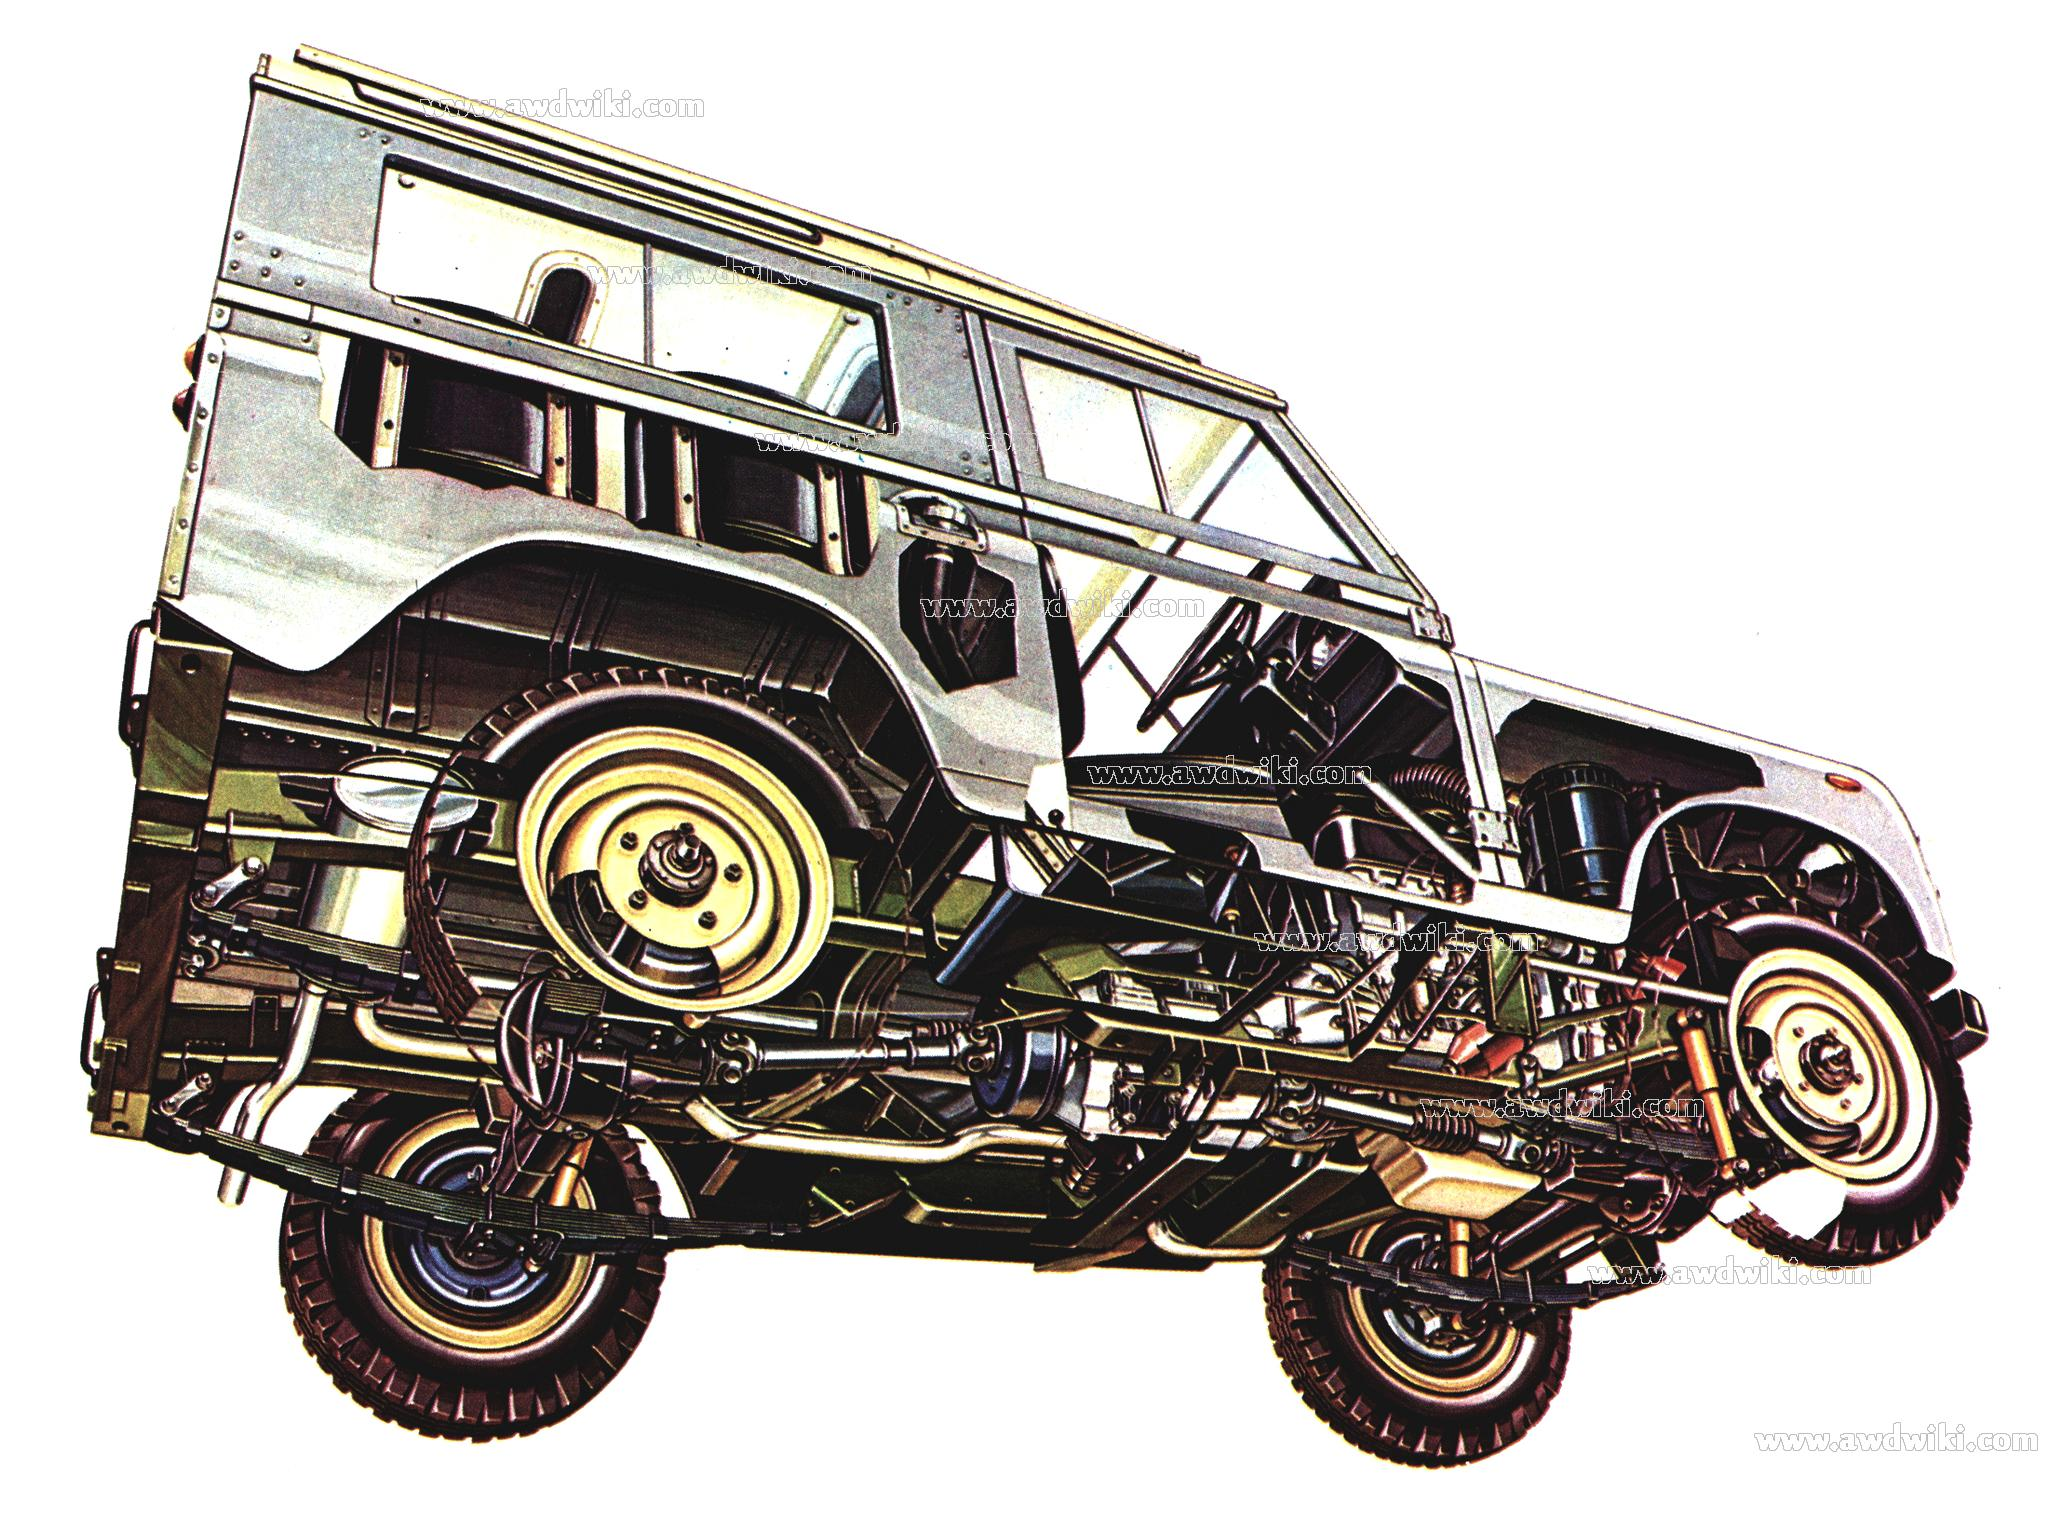 Land Rover All Wheel Drive Explained Awd Cars 4x4 Vehicles 4wd Coupling Series Iii